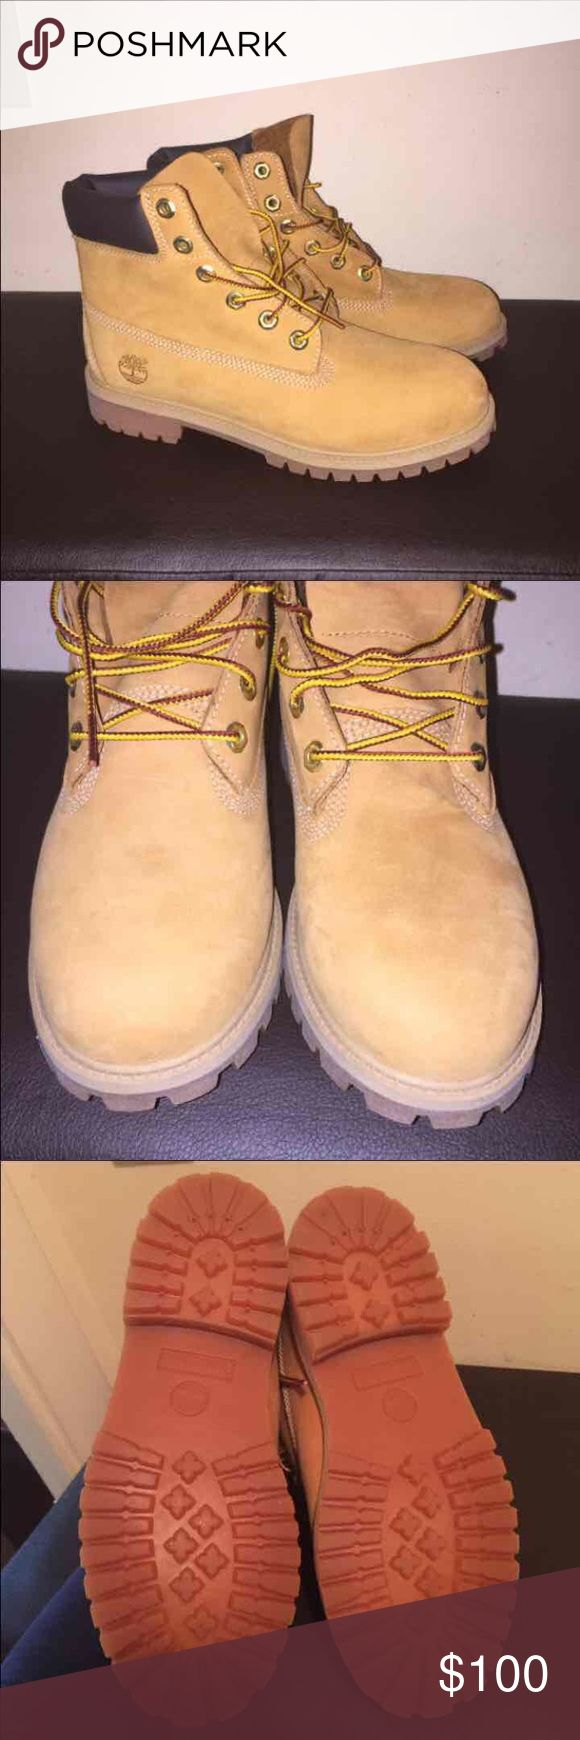 Timberland boots **Size 7 Men's/size 9 women's   **wheat color  Brand new. Does not come with original box Timberland Shoes Winter & Rain Boots